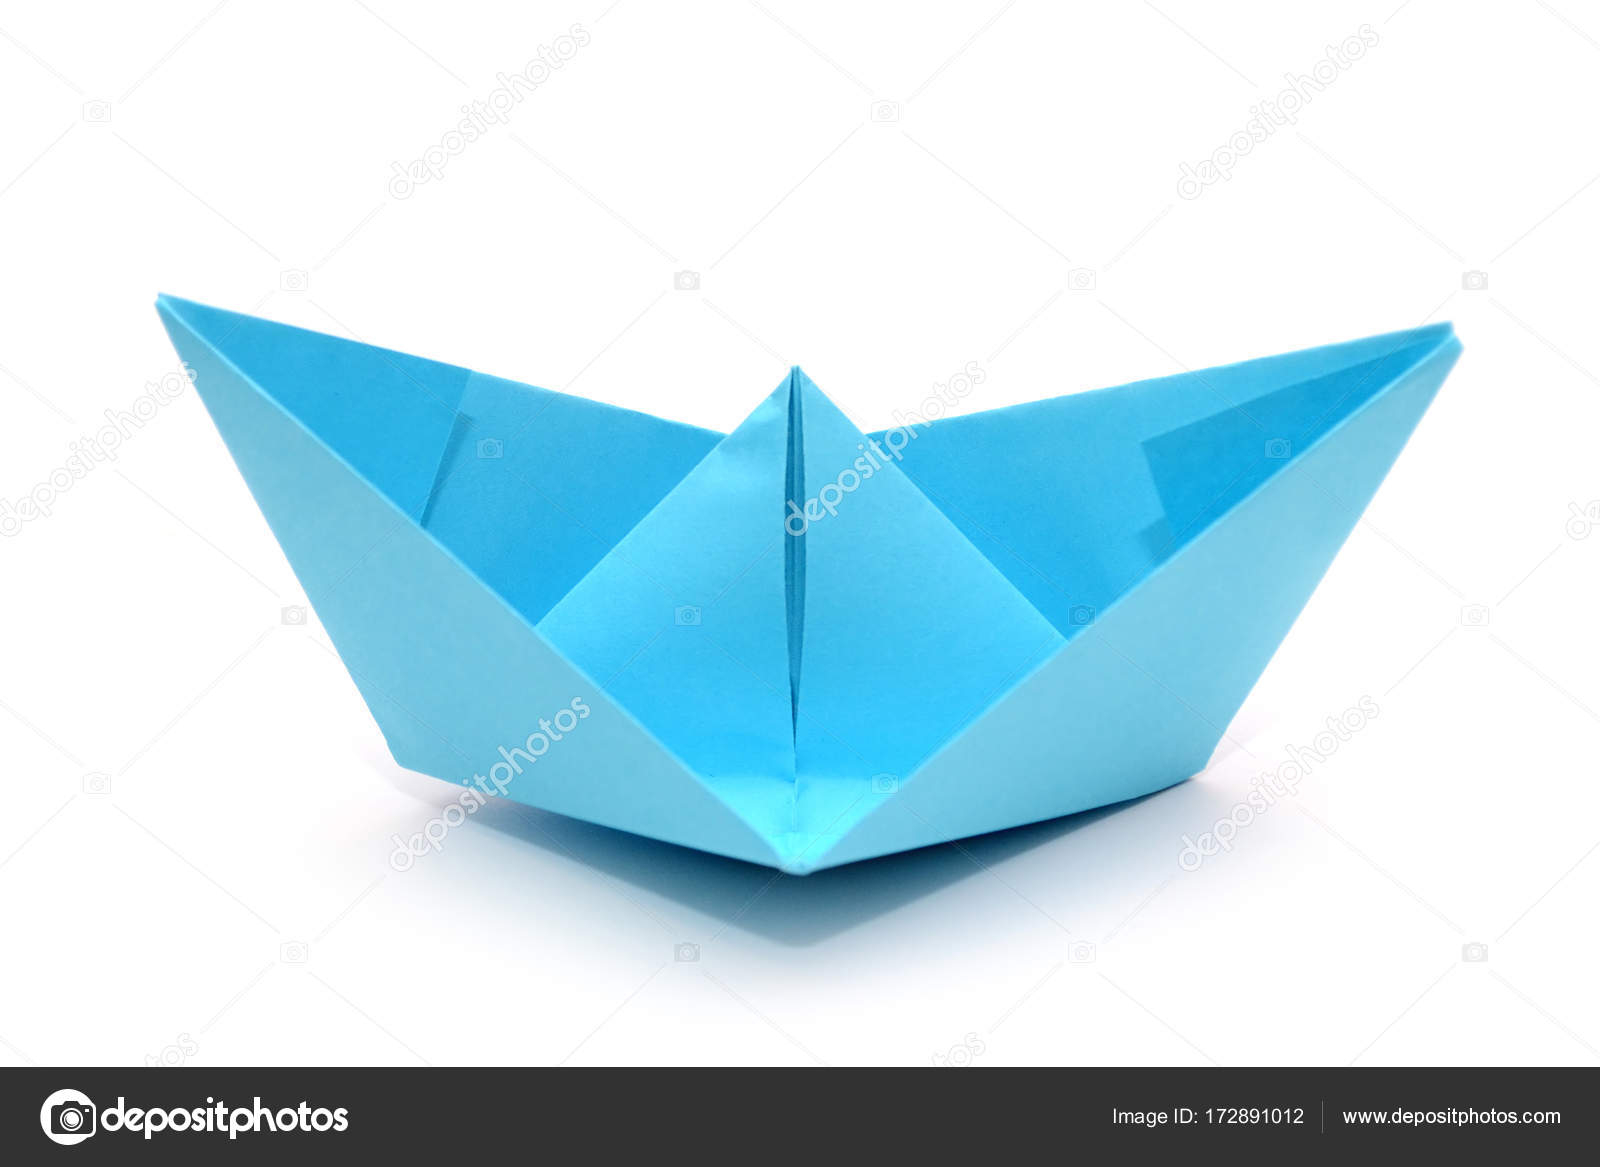 Origami Paper Boat Blue Paper Boat Origami Boat Isolated Stock Photo Luda311